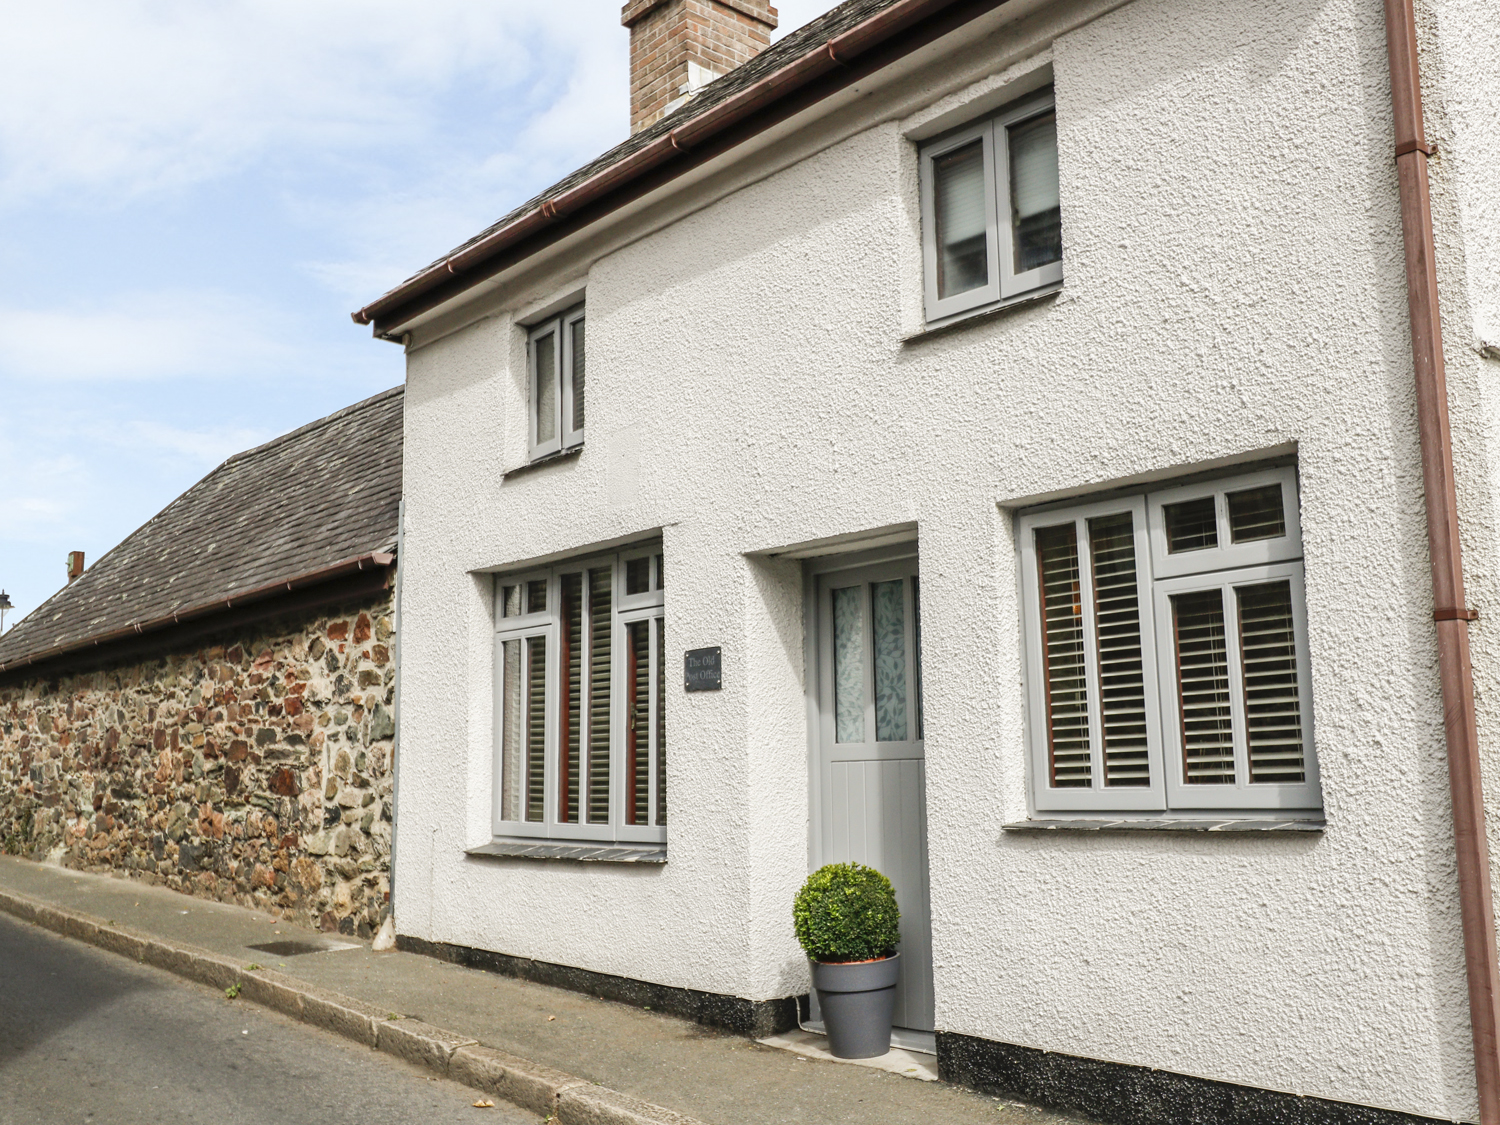 1 bedroom Cottage for rent in Ivybridge